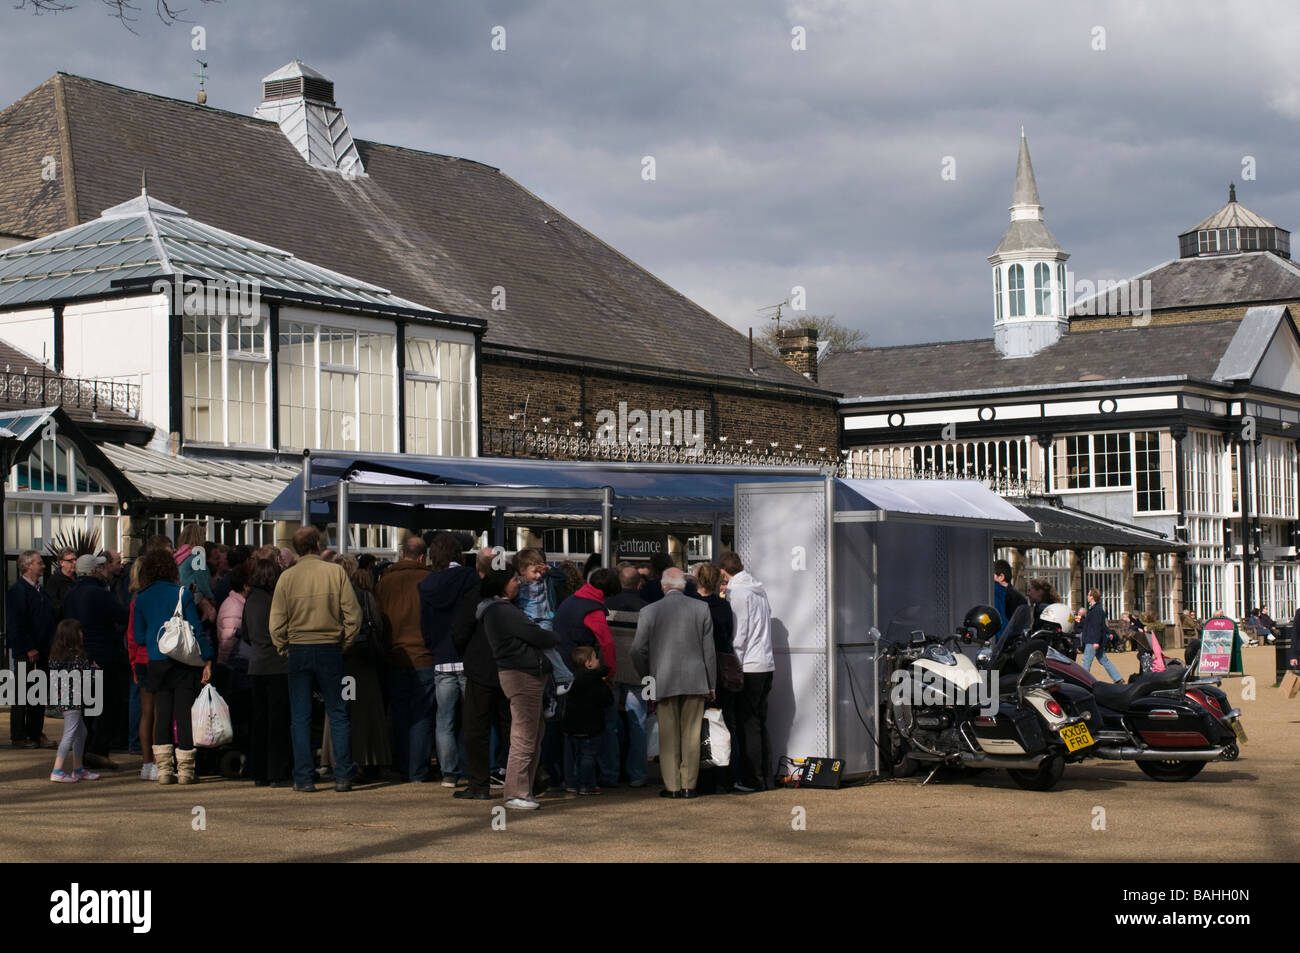 The Hairy Bikers celebrity food chefs being filmed in Buxton gardens  Derbyshire England - Stock Image